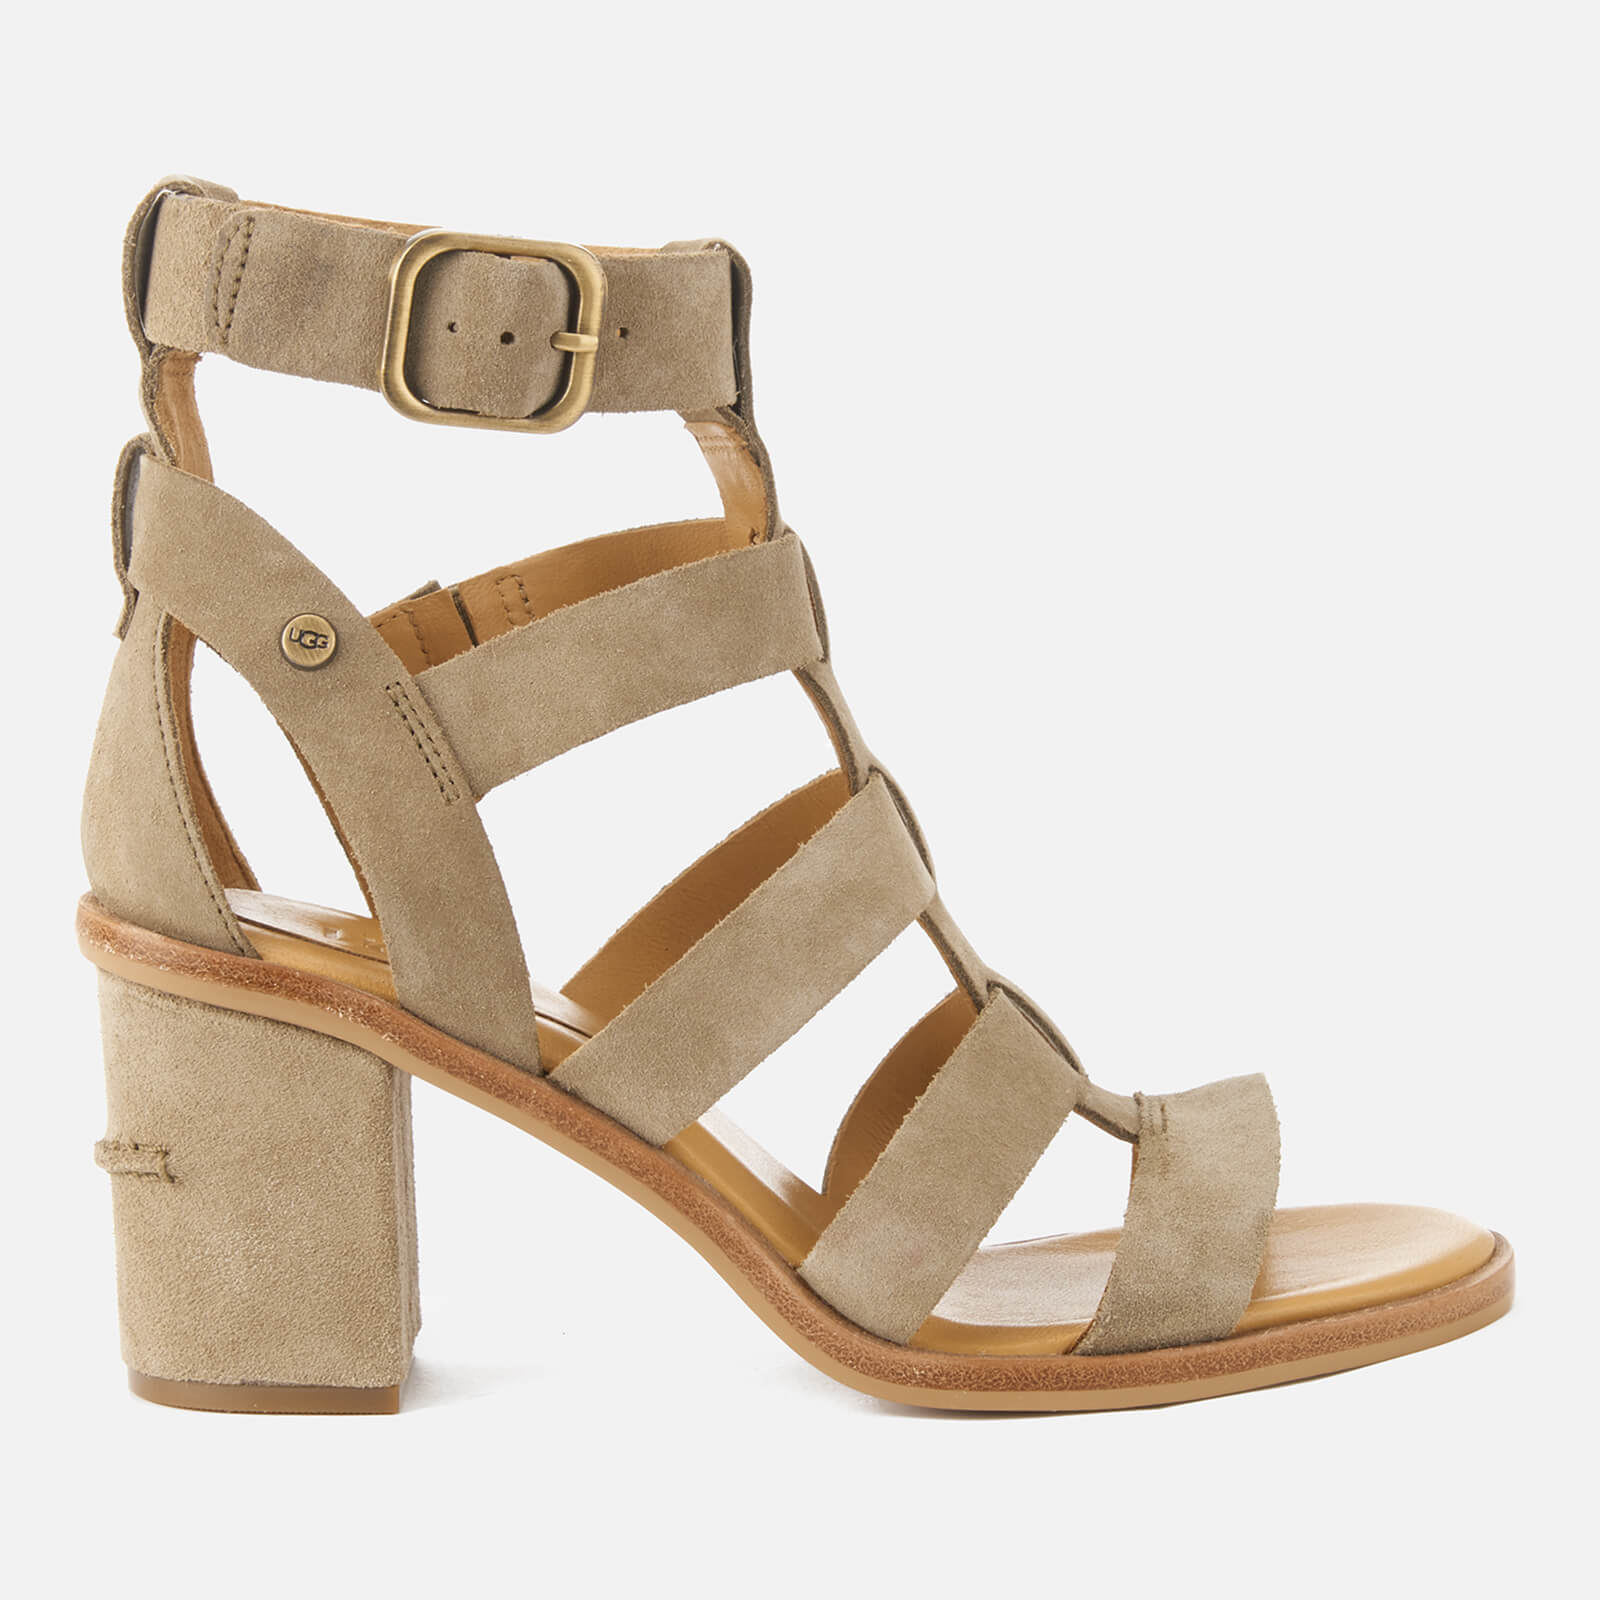 da78f31c9f3 UGG Women s Macayla Gladiator Heeled Sandals - Antelope Womens Footwear